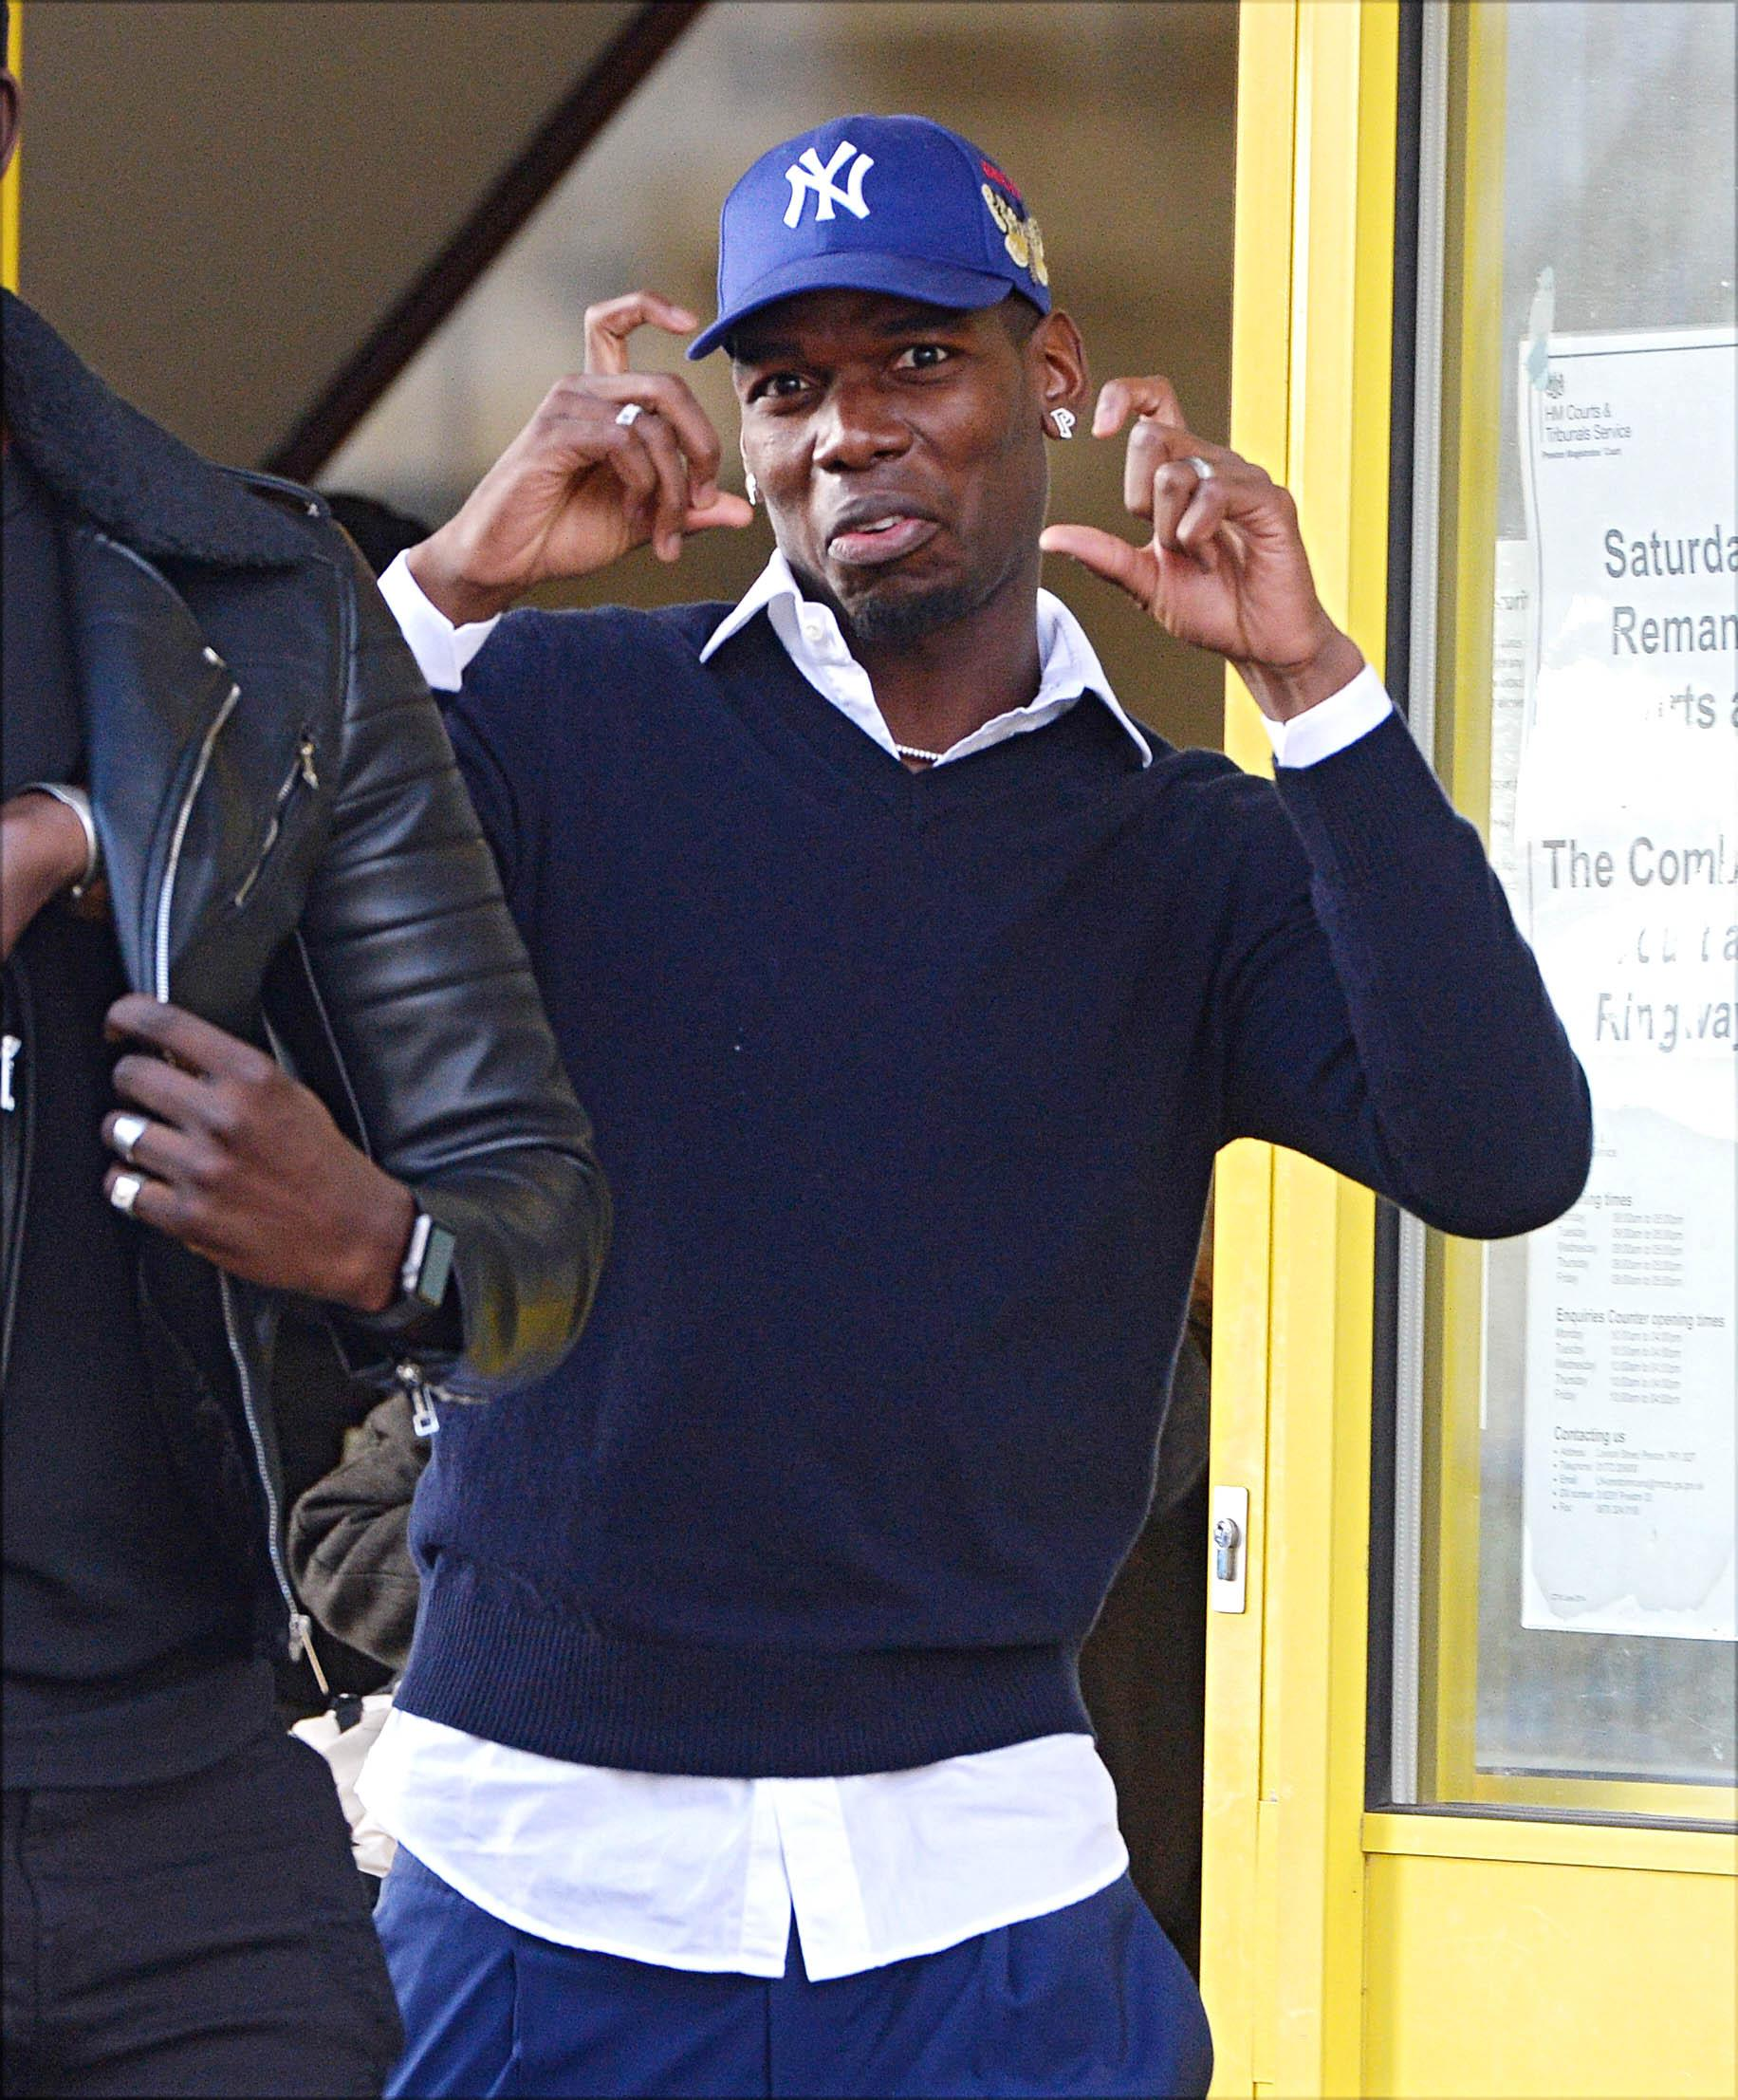 As he left court, Pogba mocked Sun photographer Jim Clarke and mimicked the action of taking a picture